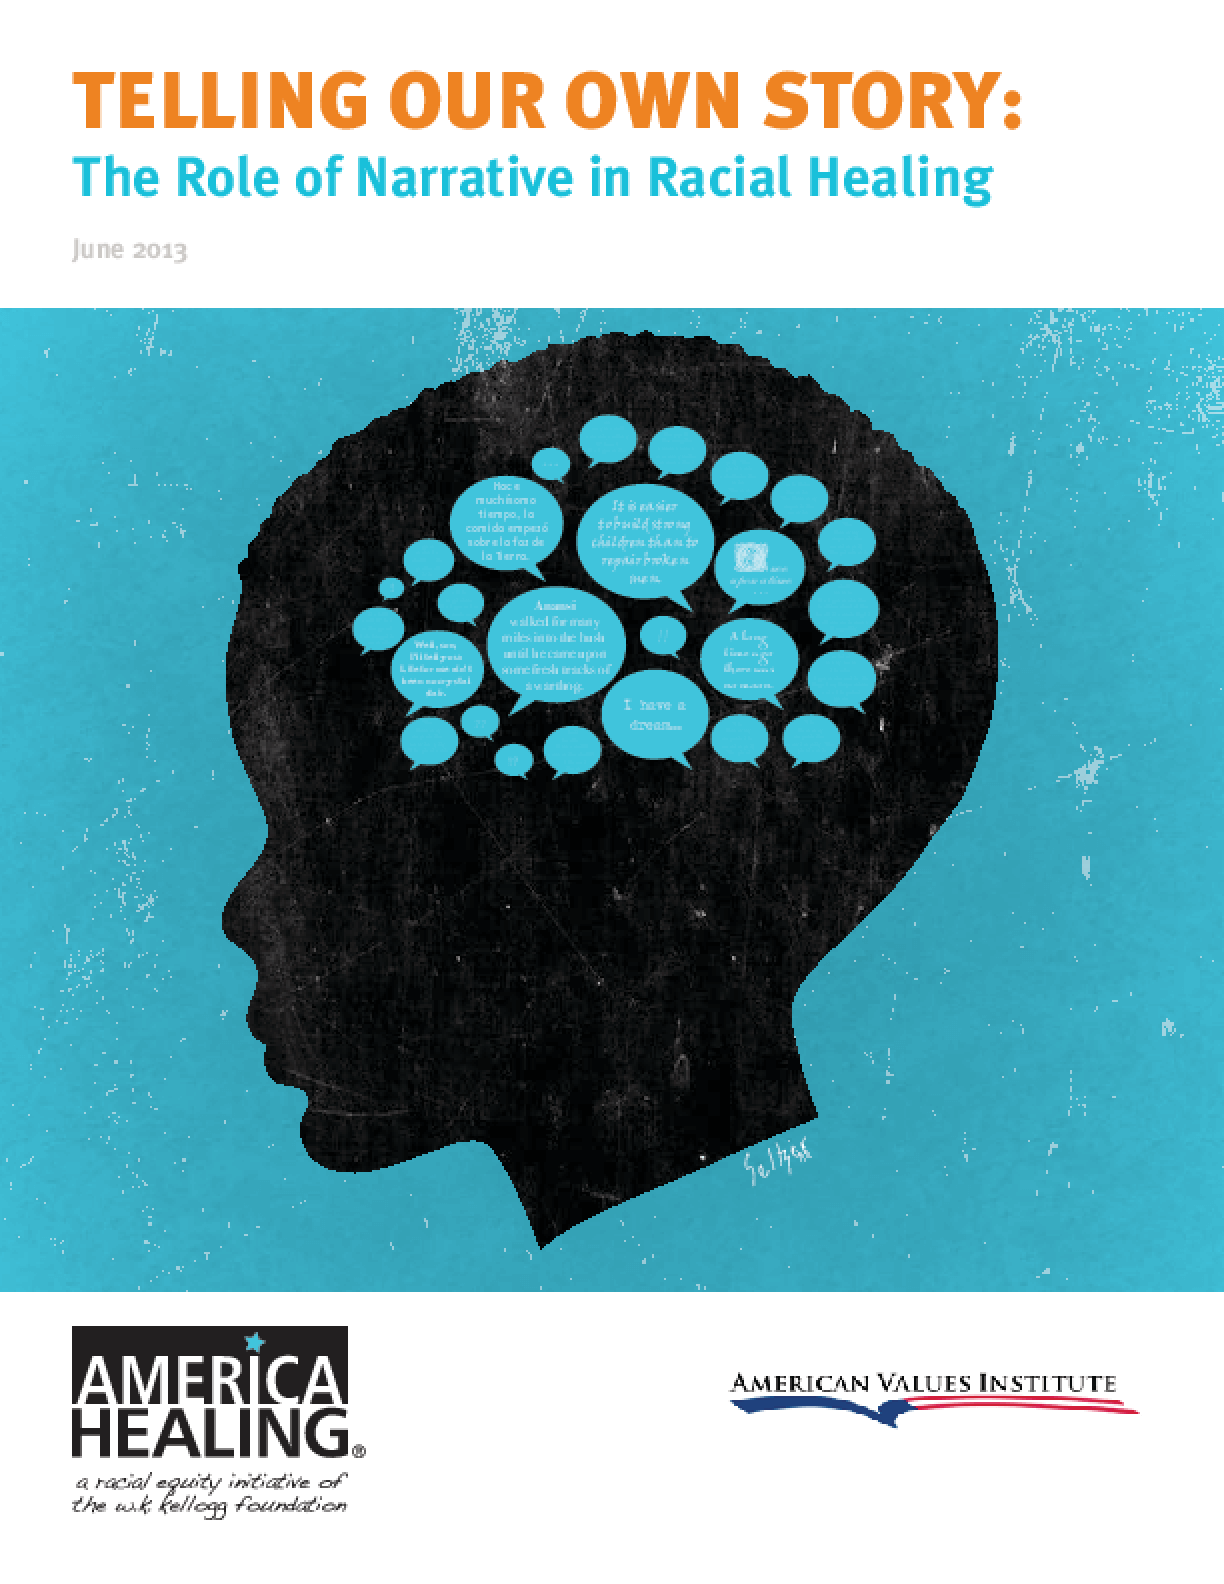 Telling Our Own Story: The Role of Narrative in Racial Healing